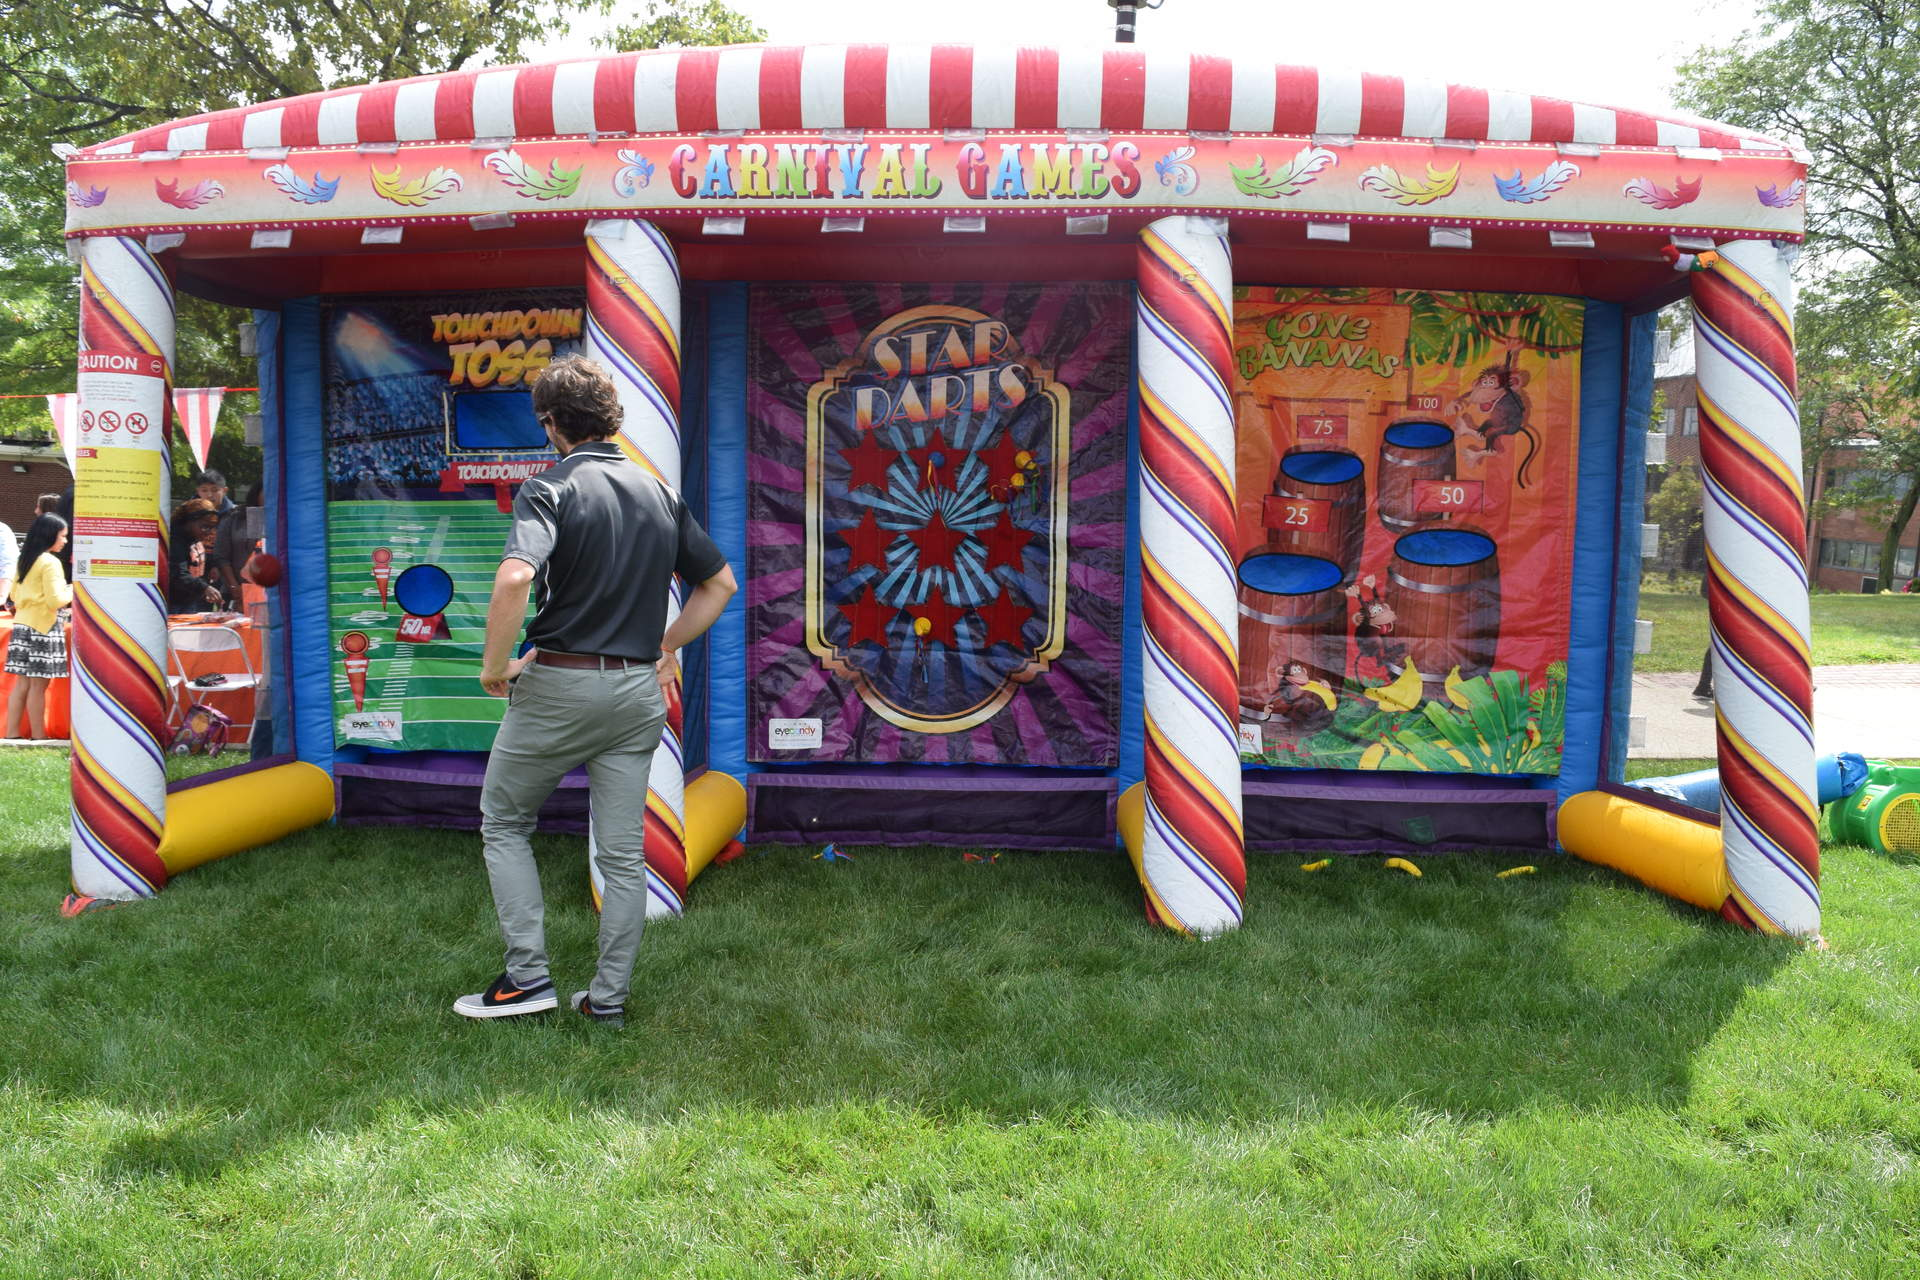 3 in 1 Inflatable Carnival Booth, Football Toss, Star Darts, Gone Bananas, Carnival Game, Carnival Booth, Carnival Tent